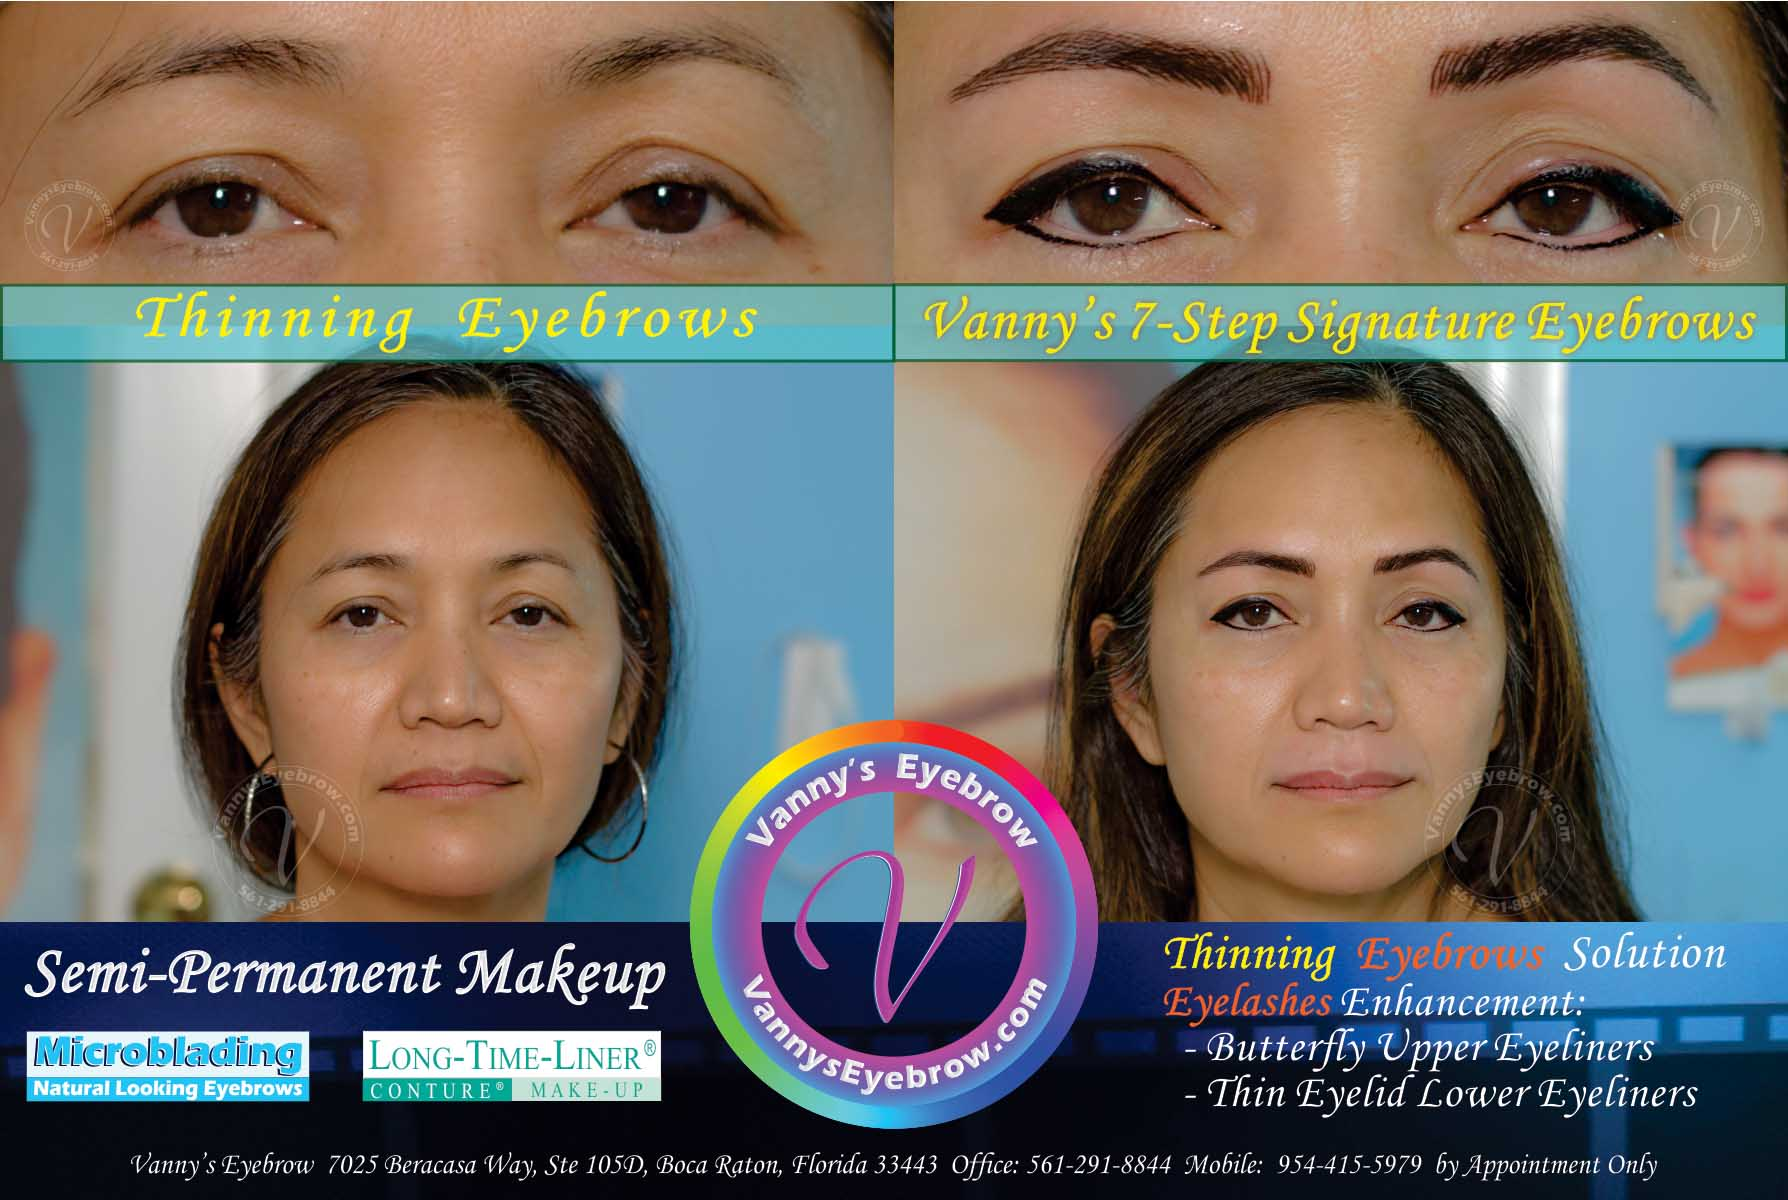 Mild Thinning Eyebrows Solution